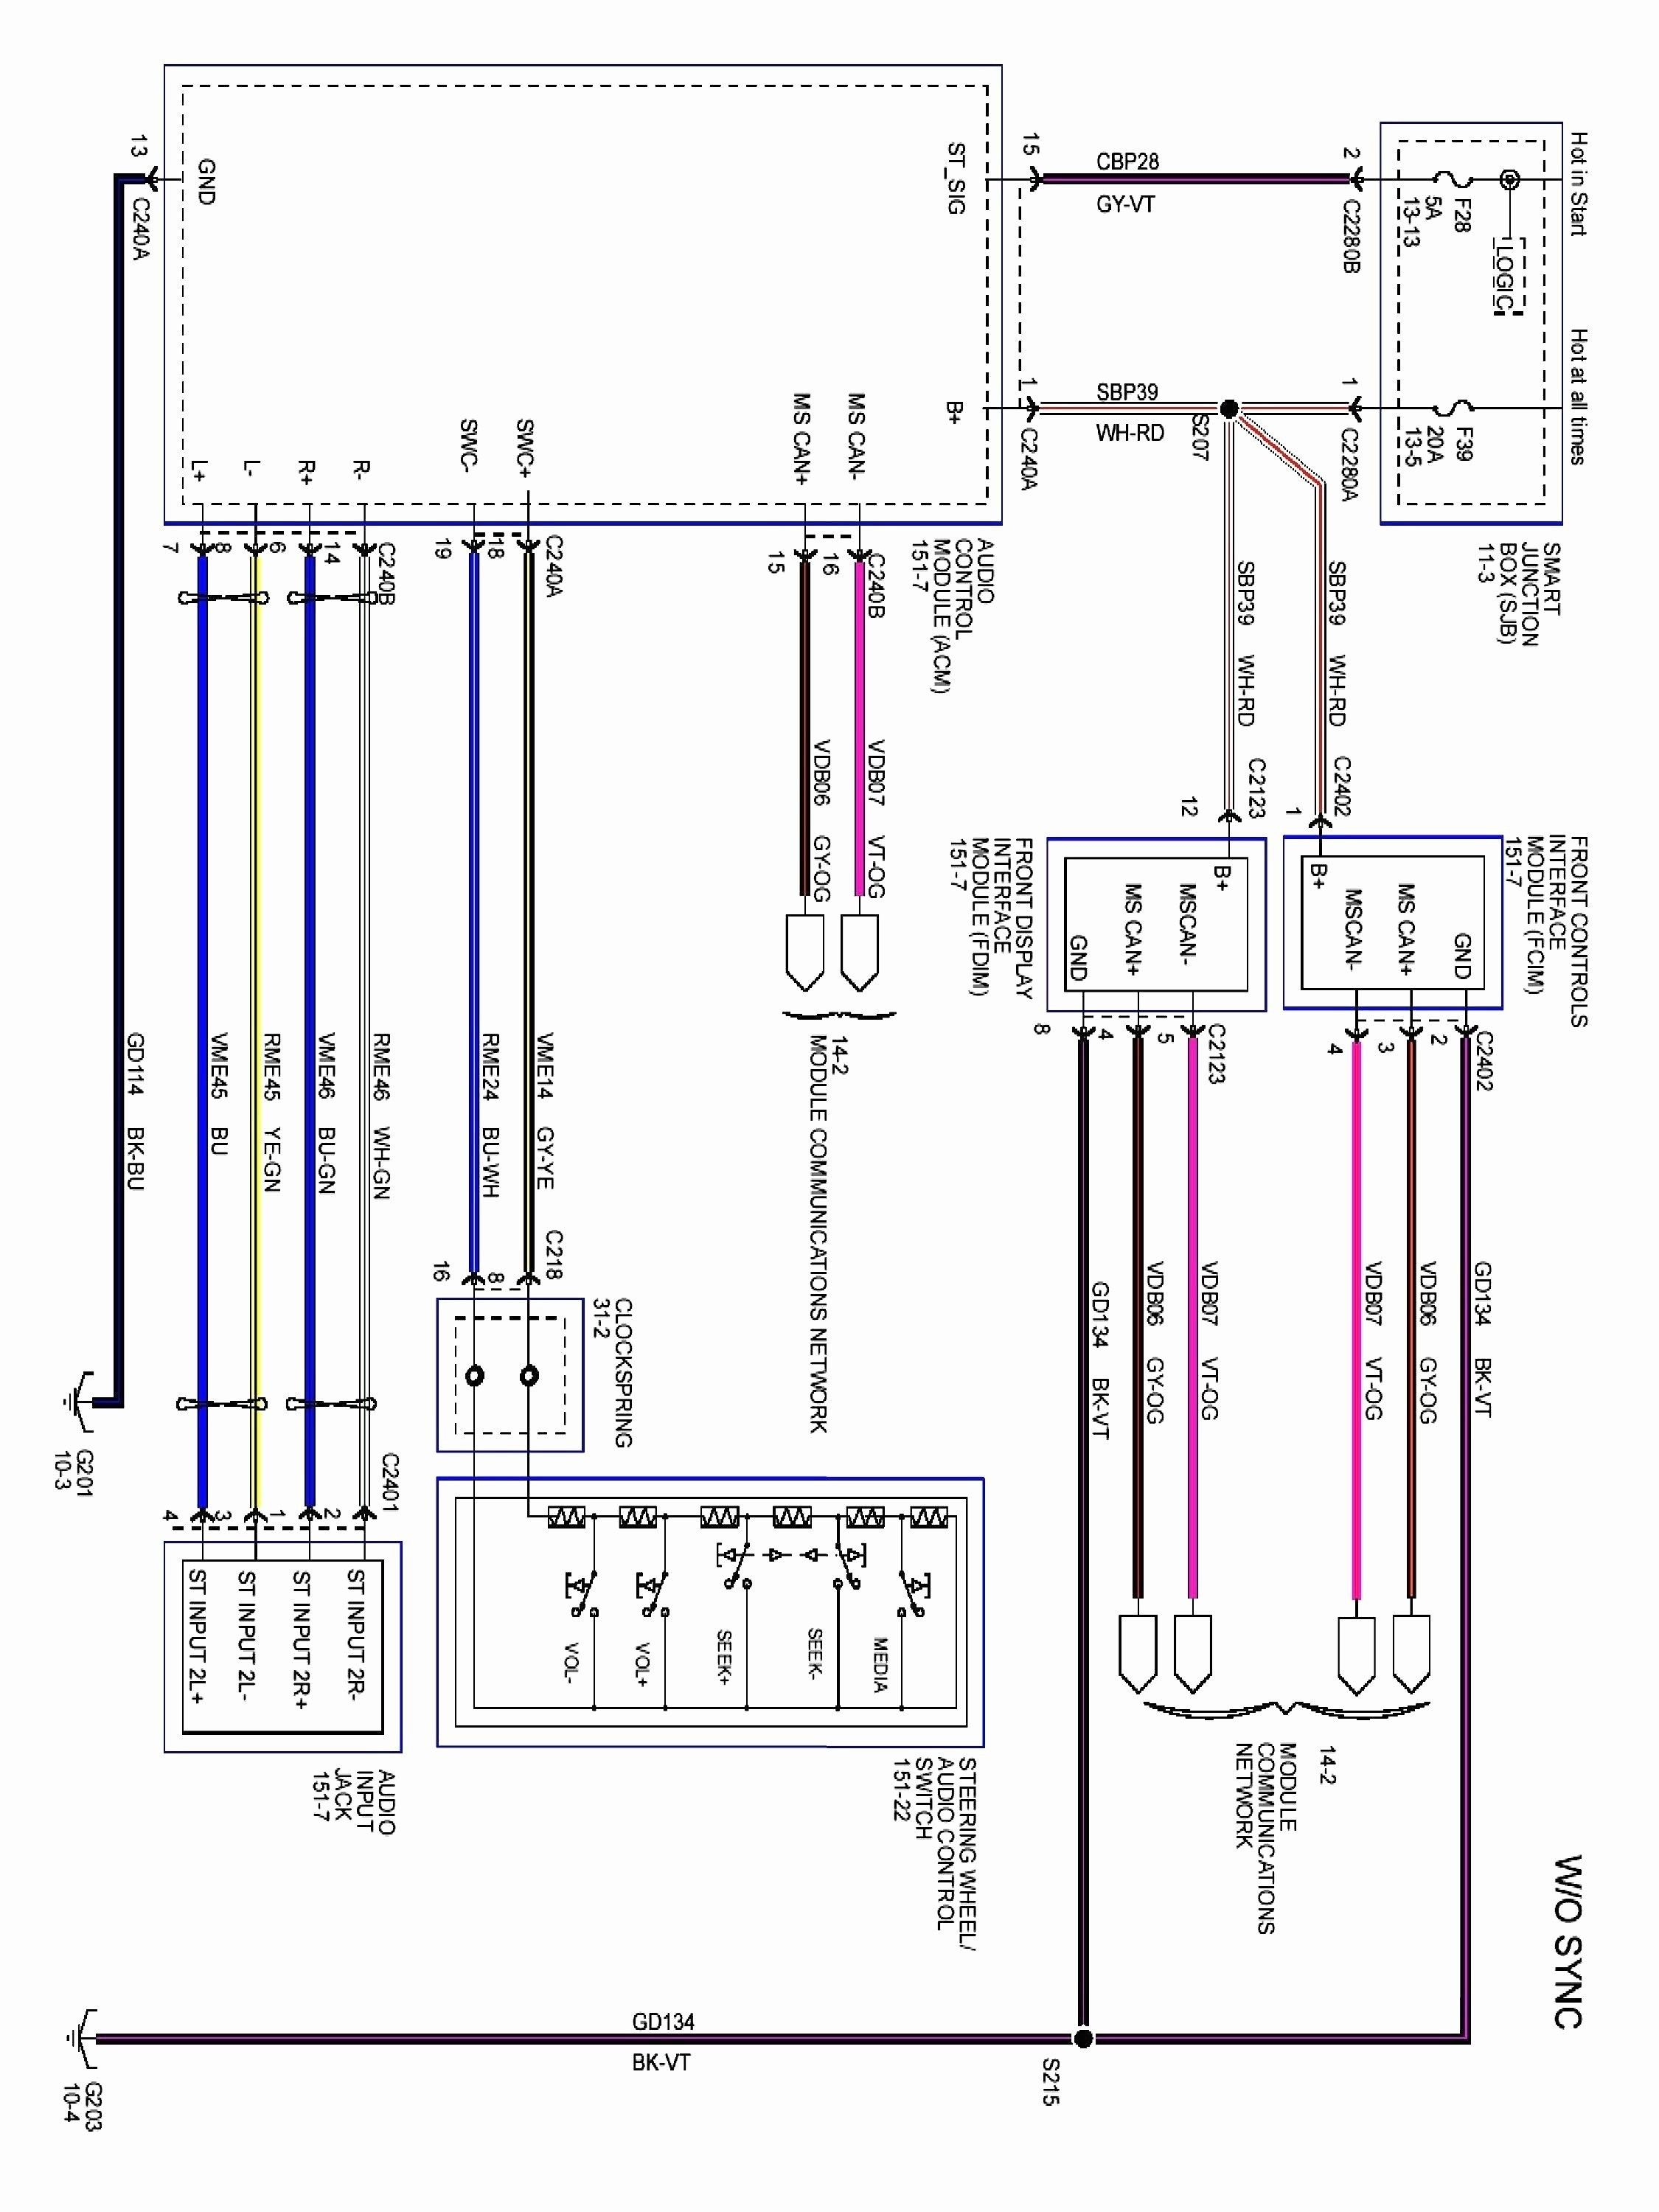 new bmw amplifier wiring diagram #diagram #diagramtemplate #diagramsample |  alarmas para autos, auto volkswagen, volkswagen  pinterest